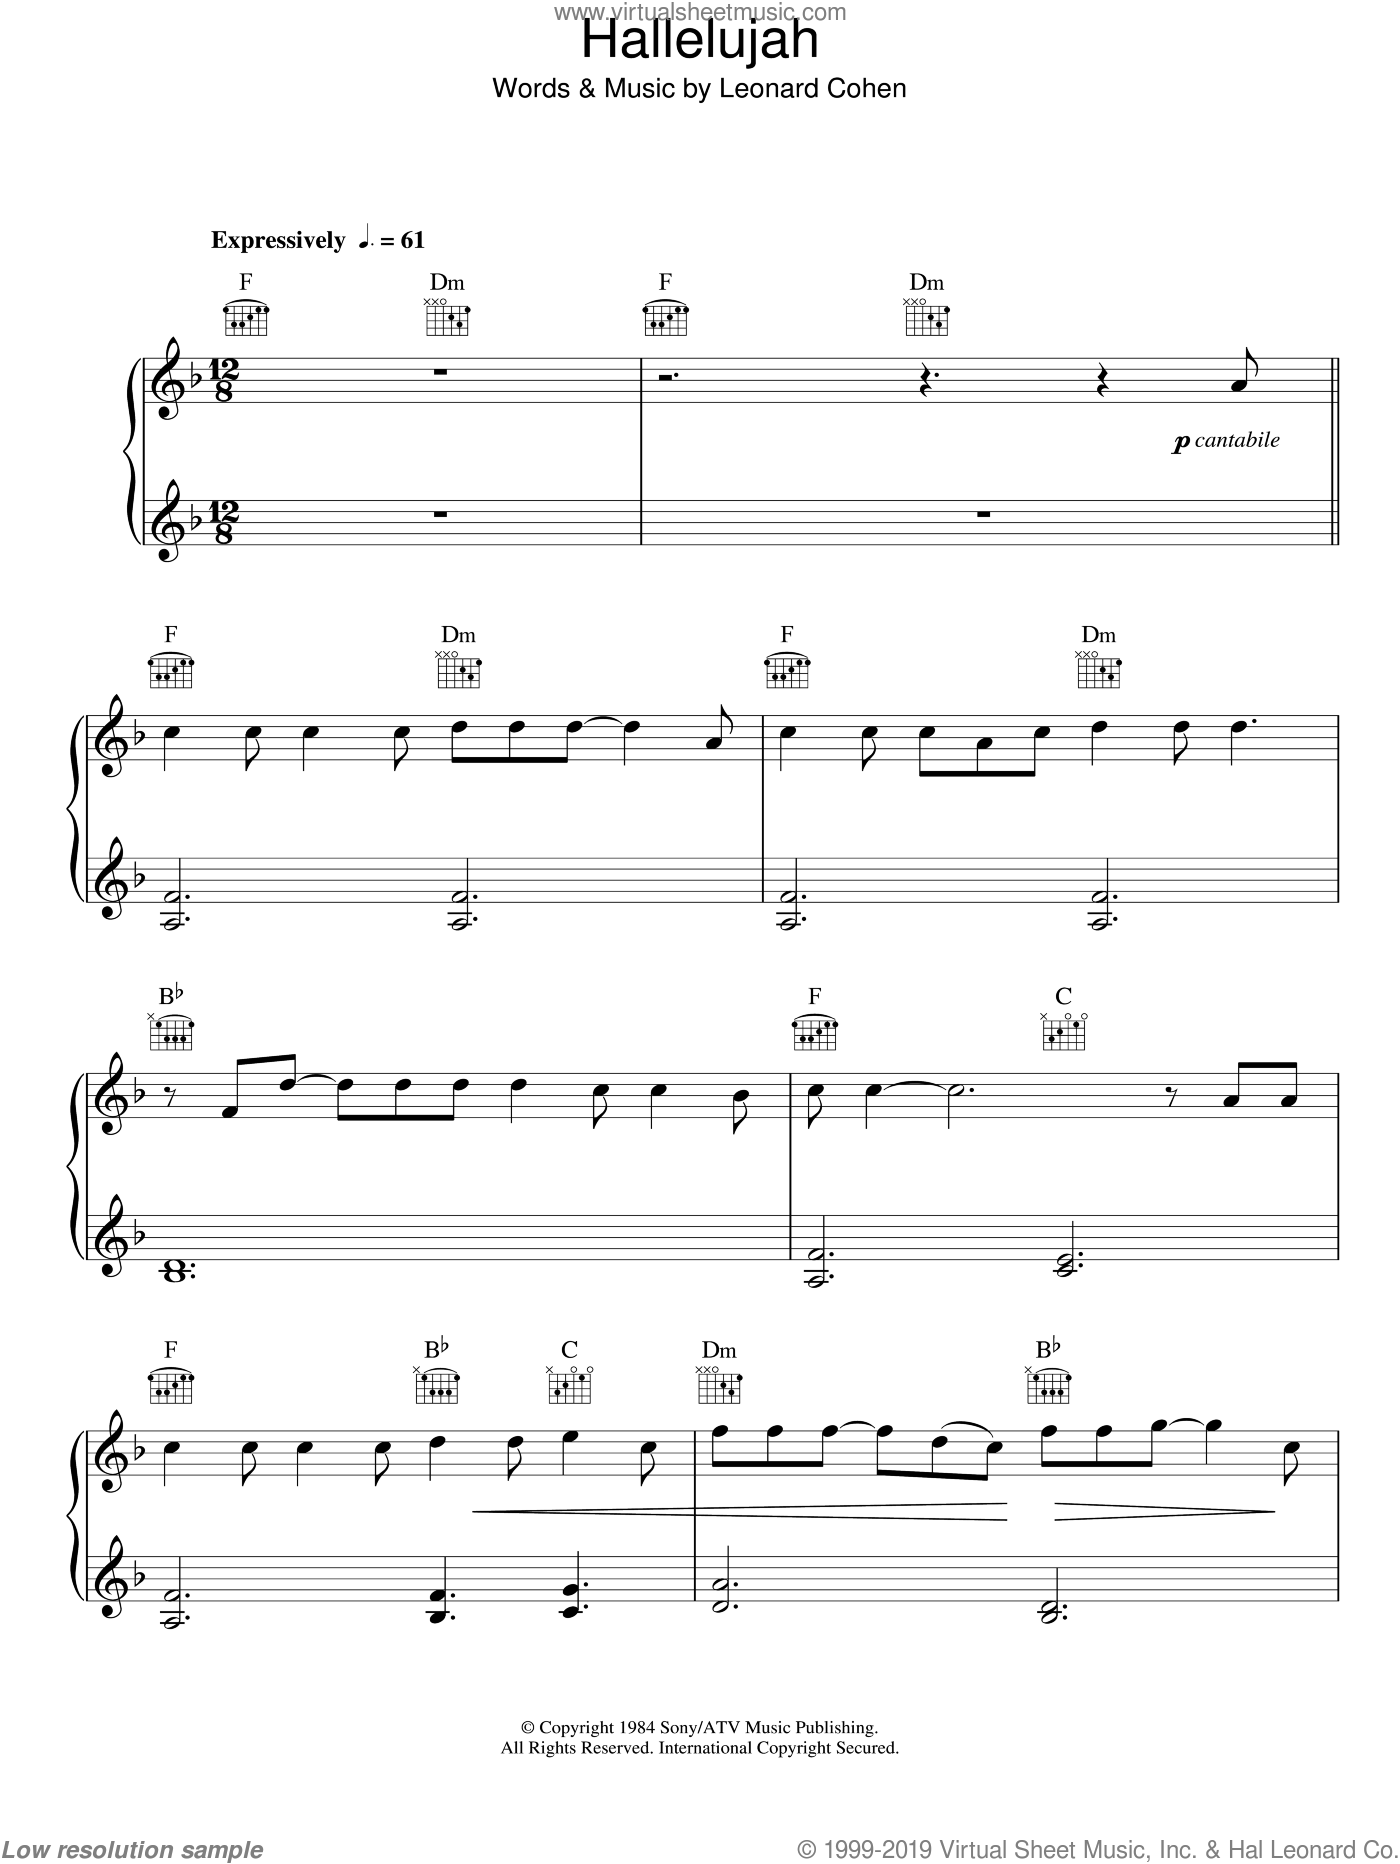 graphic about Hallelujah Piano Sheet Music Free Printable called Burke - Hallelujah sheet audio for piano solo [PDF]